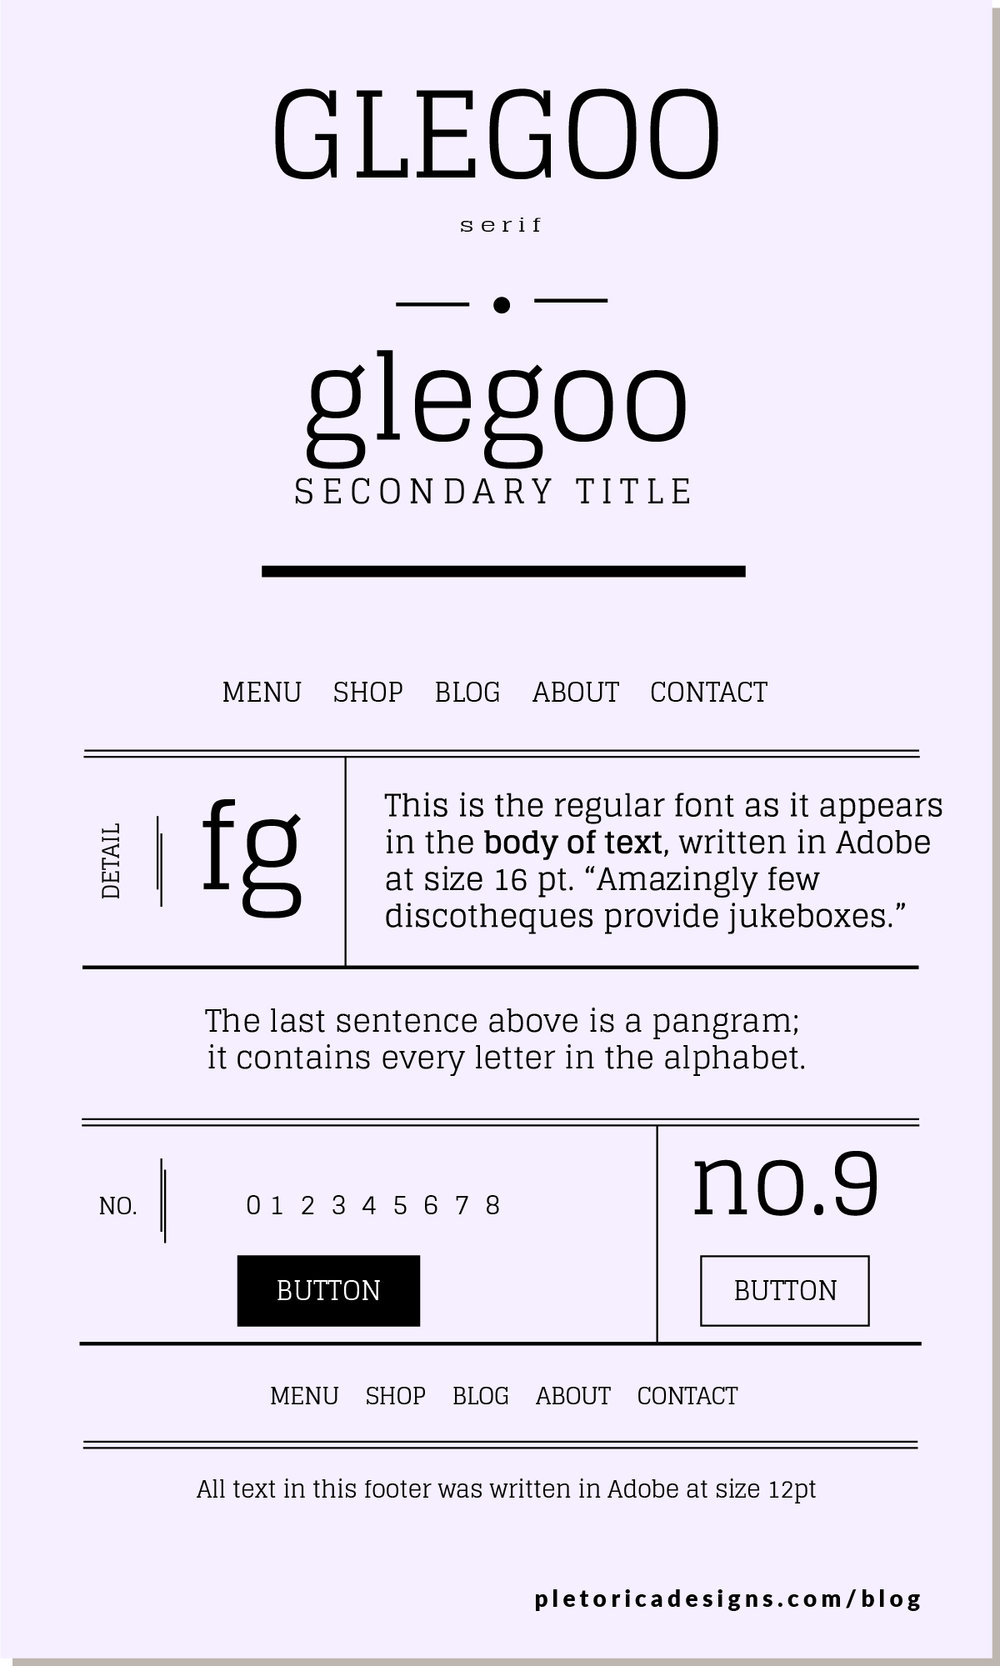 LET'S TYPE: Glegoo — PLETÓRICA DESIGNS